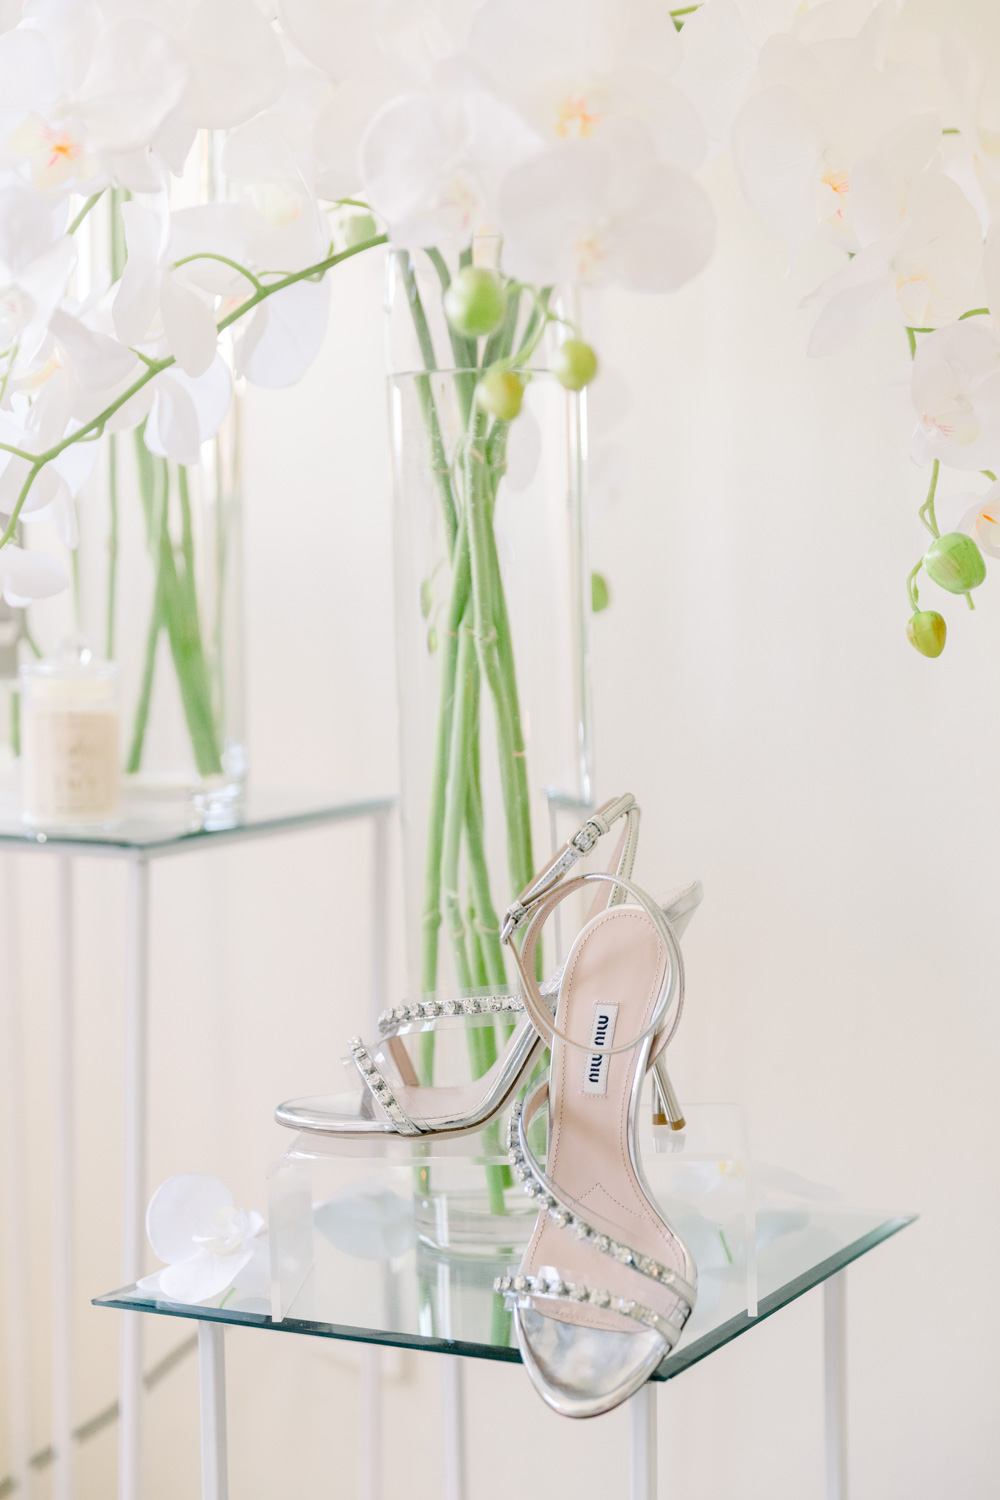 The bride's wedding shoes, the brand is Miu miu